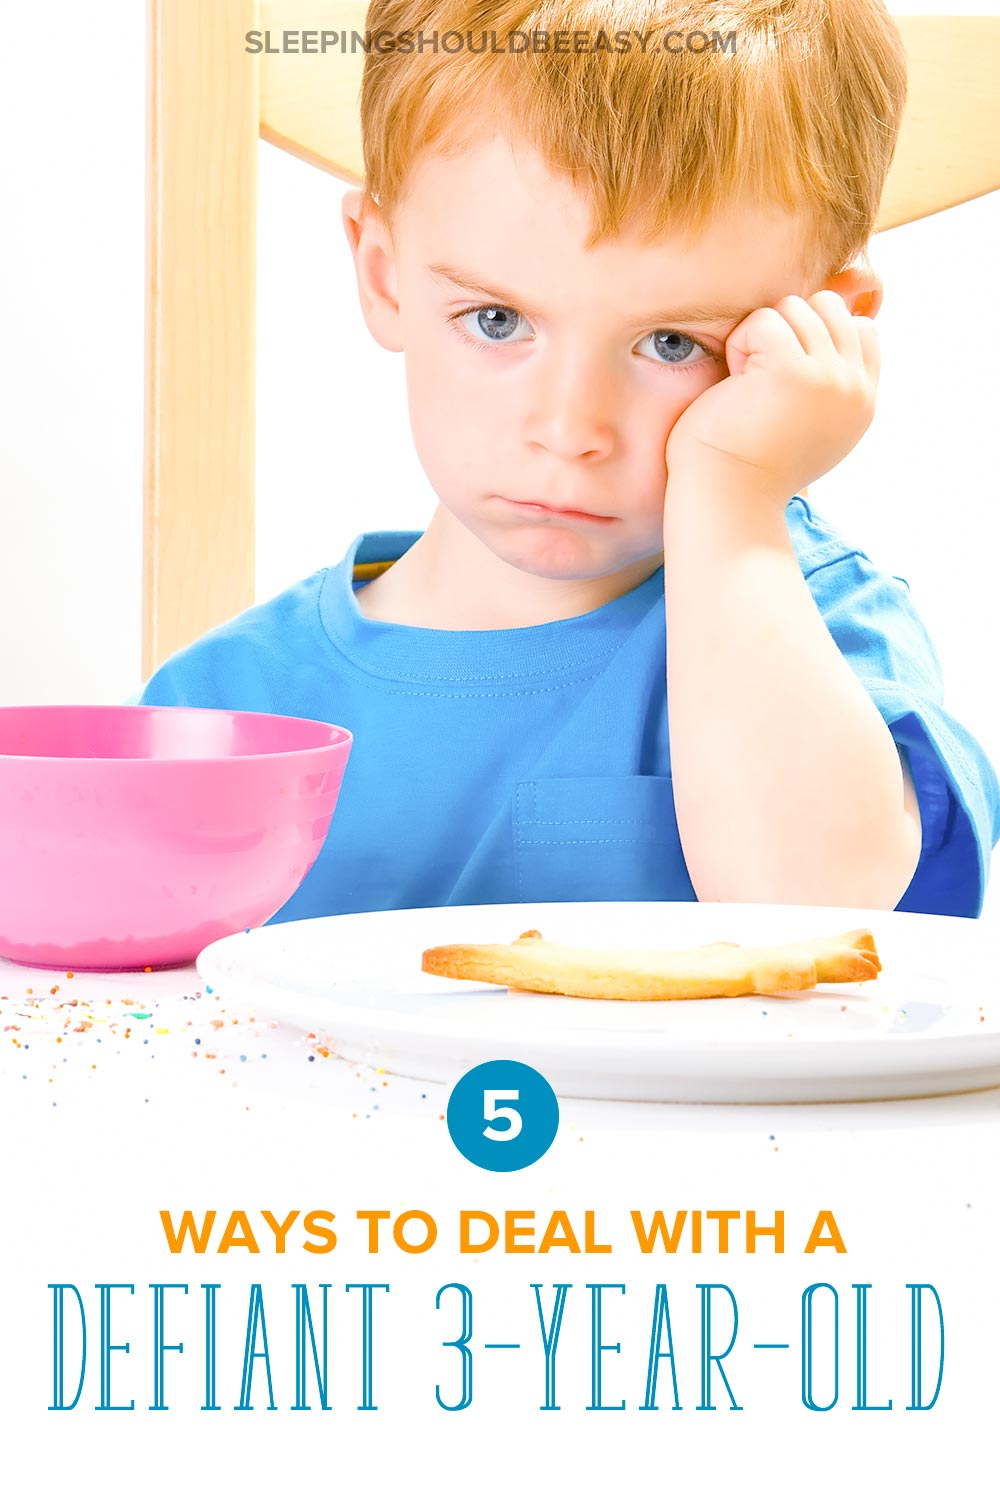 5 unusual ways to deal with a defiant 3 year old that really work